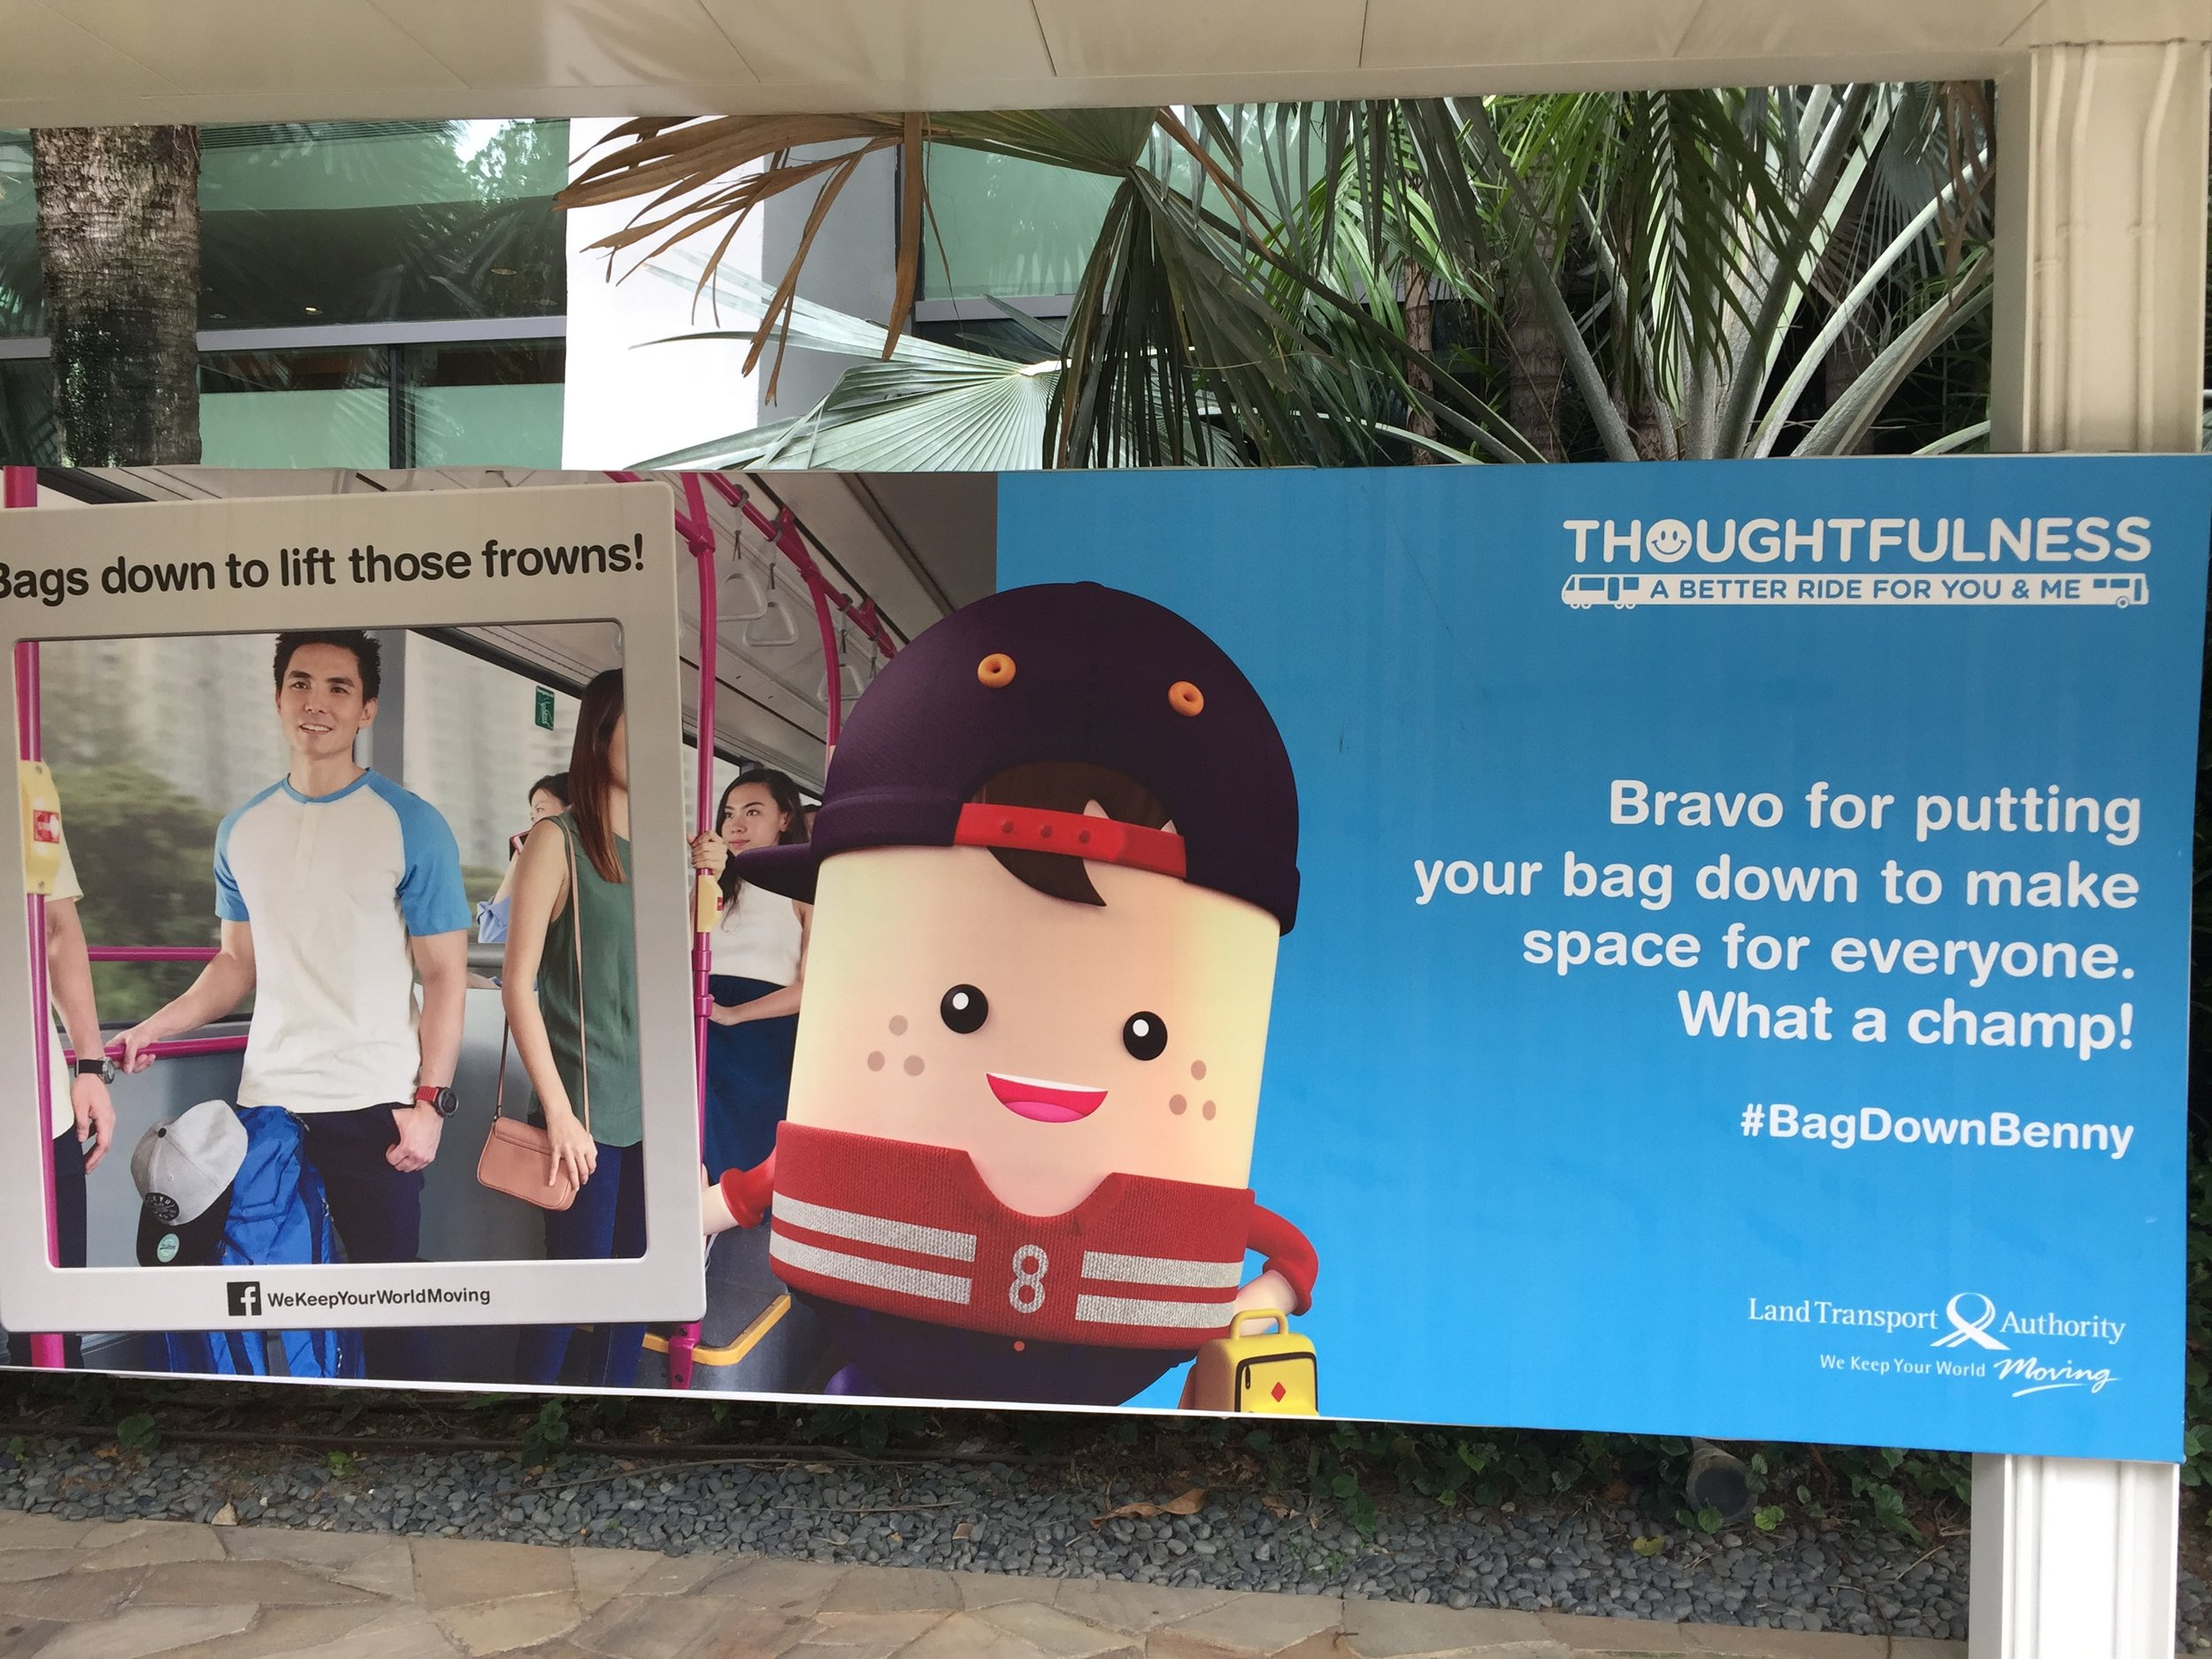 This kind of public behavioral encouragement is all over Singapore.